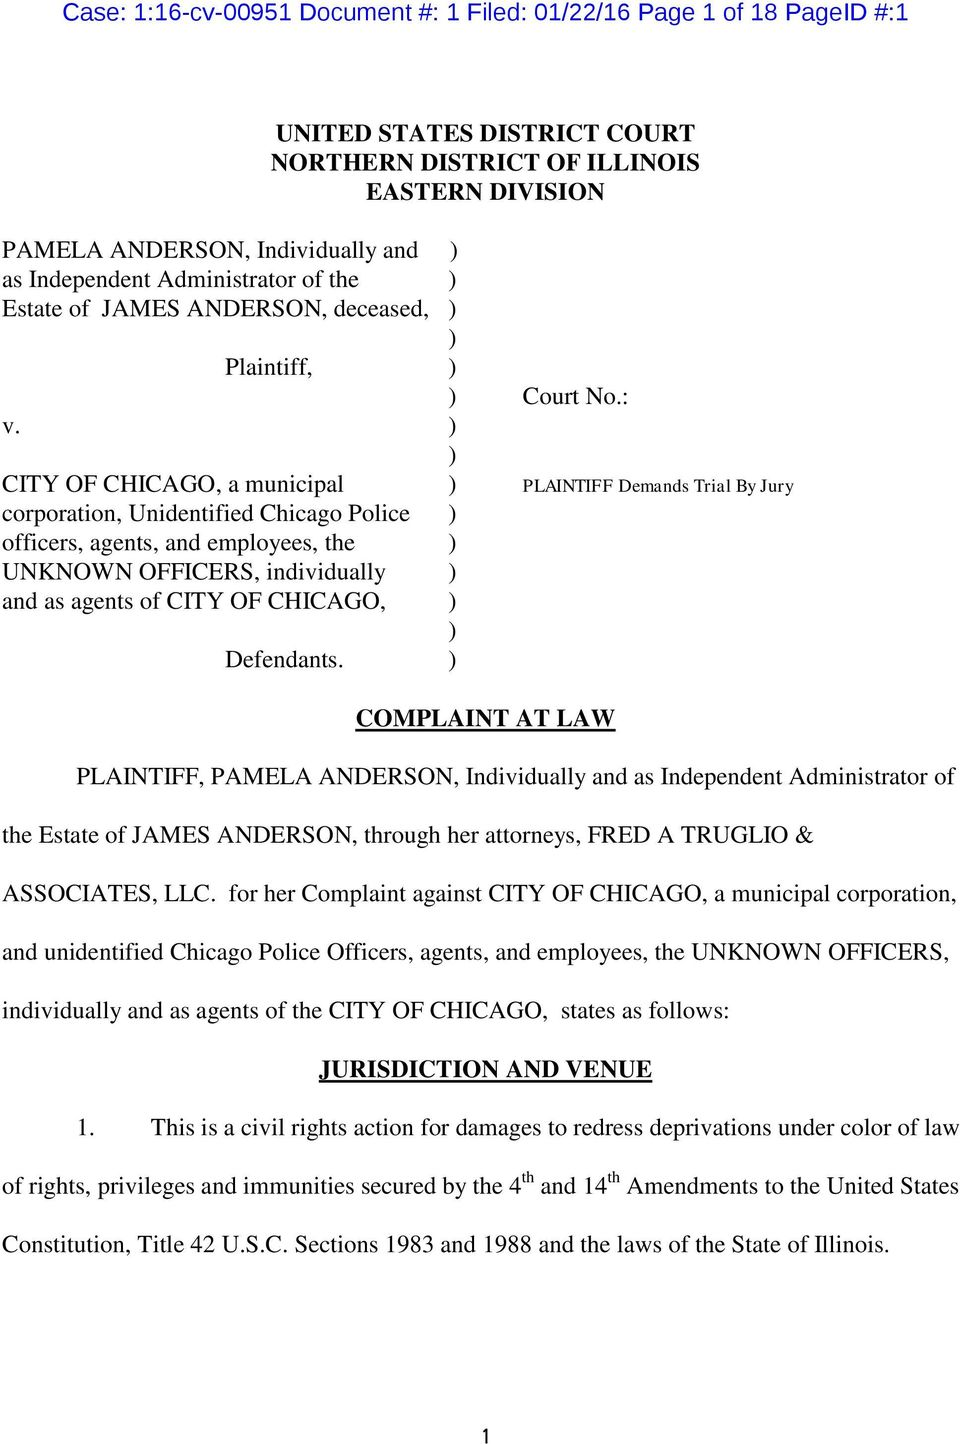 ) ) CITY OF CHICAGO, a municipal ) PLAINTIFF Demands Trial By Jury corporation, Unidentified Chicago Police ) officers, agents, and employees, the ) UNKNOWN OFFICERS, individually ) and as agents of